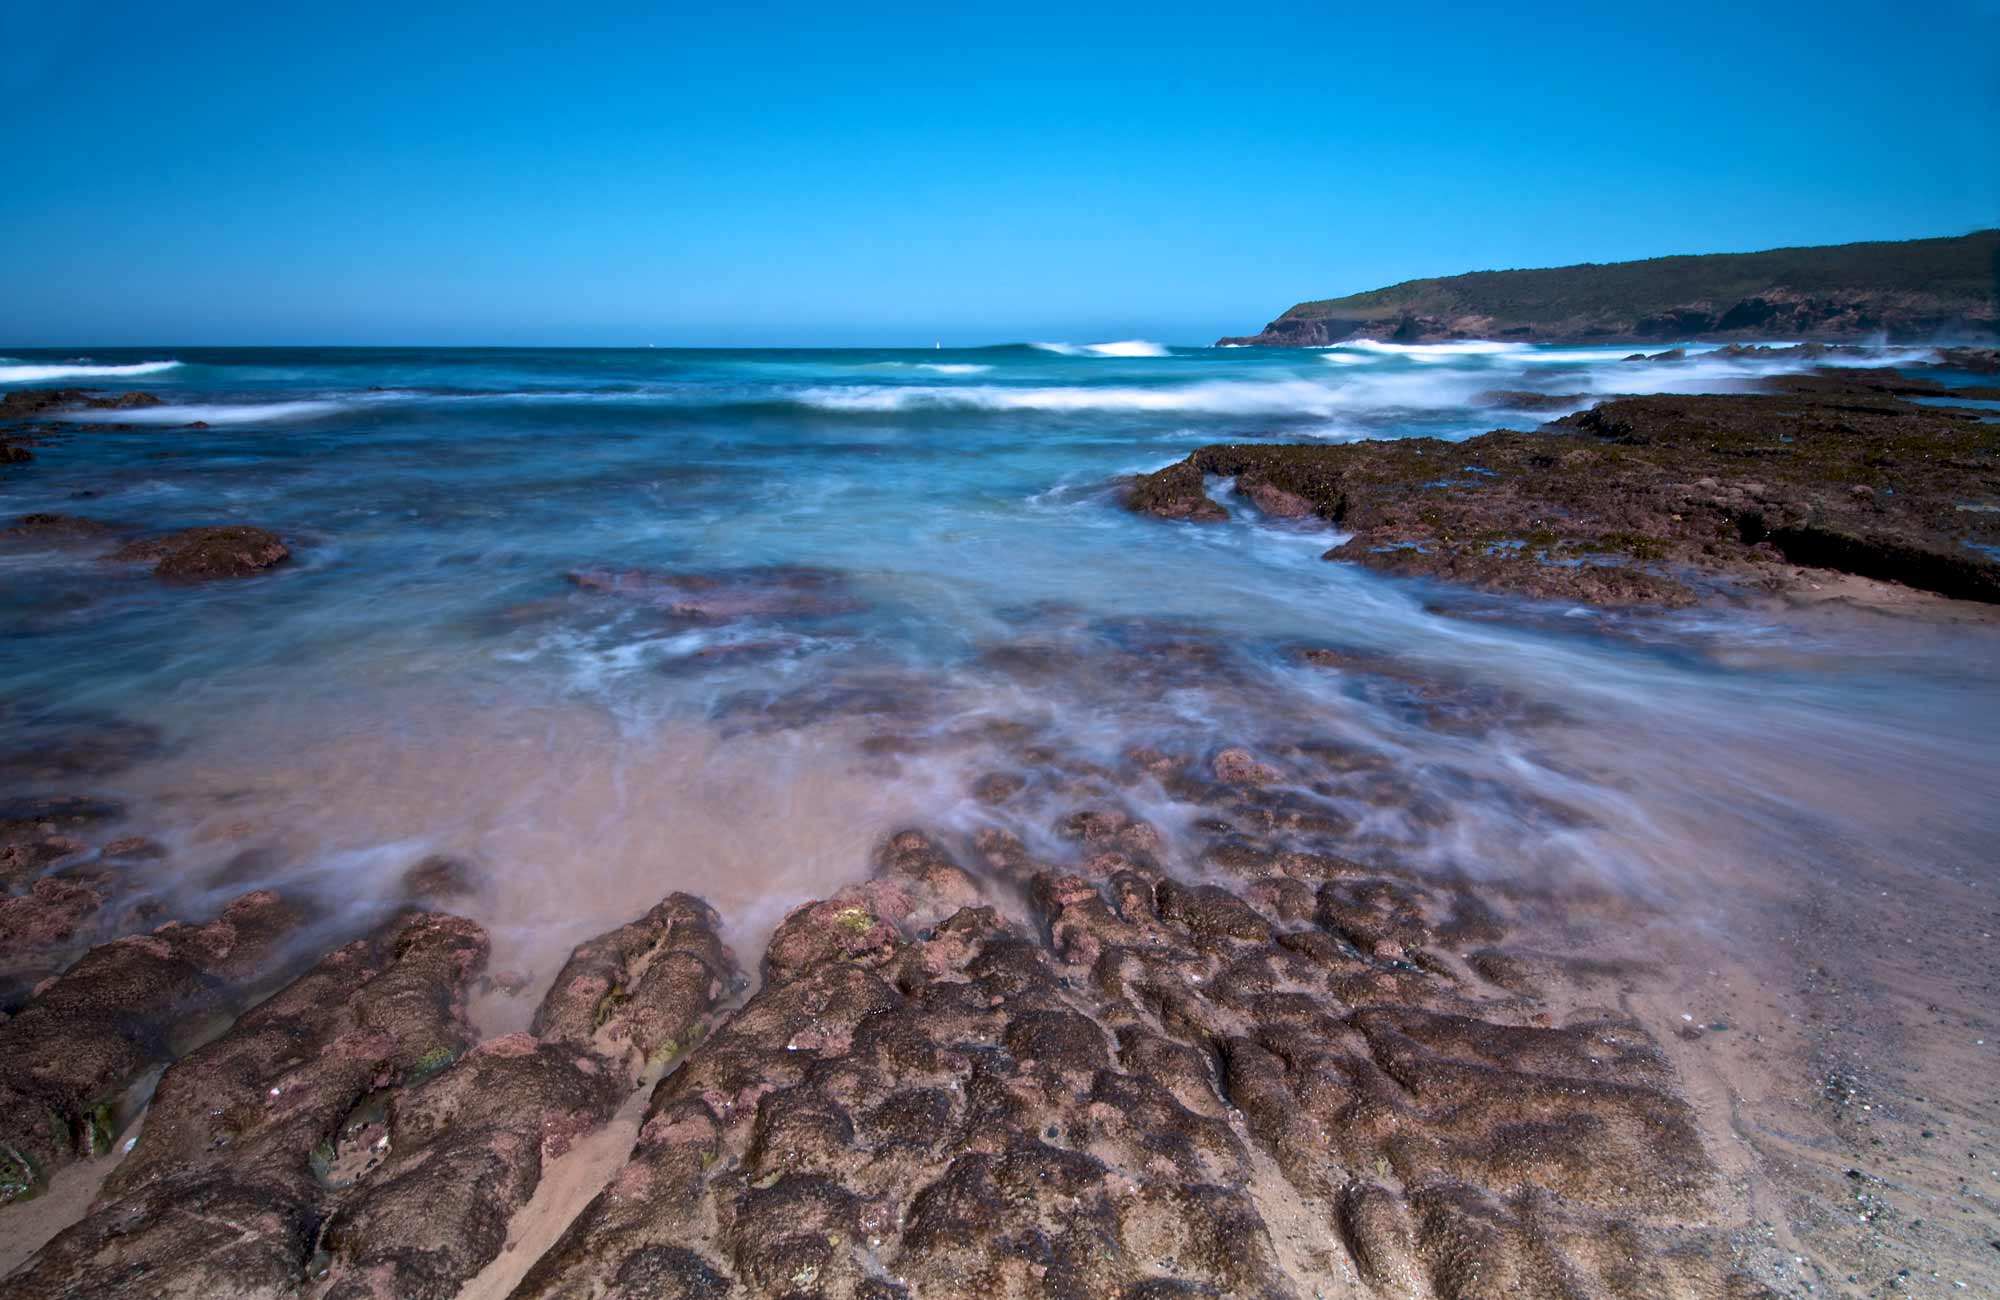 Moonee Beach, Munmorah State Conservation Area. Photo: John Spencer